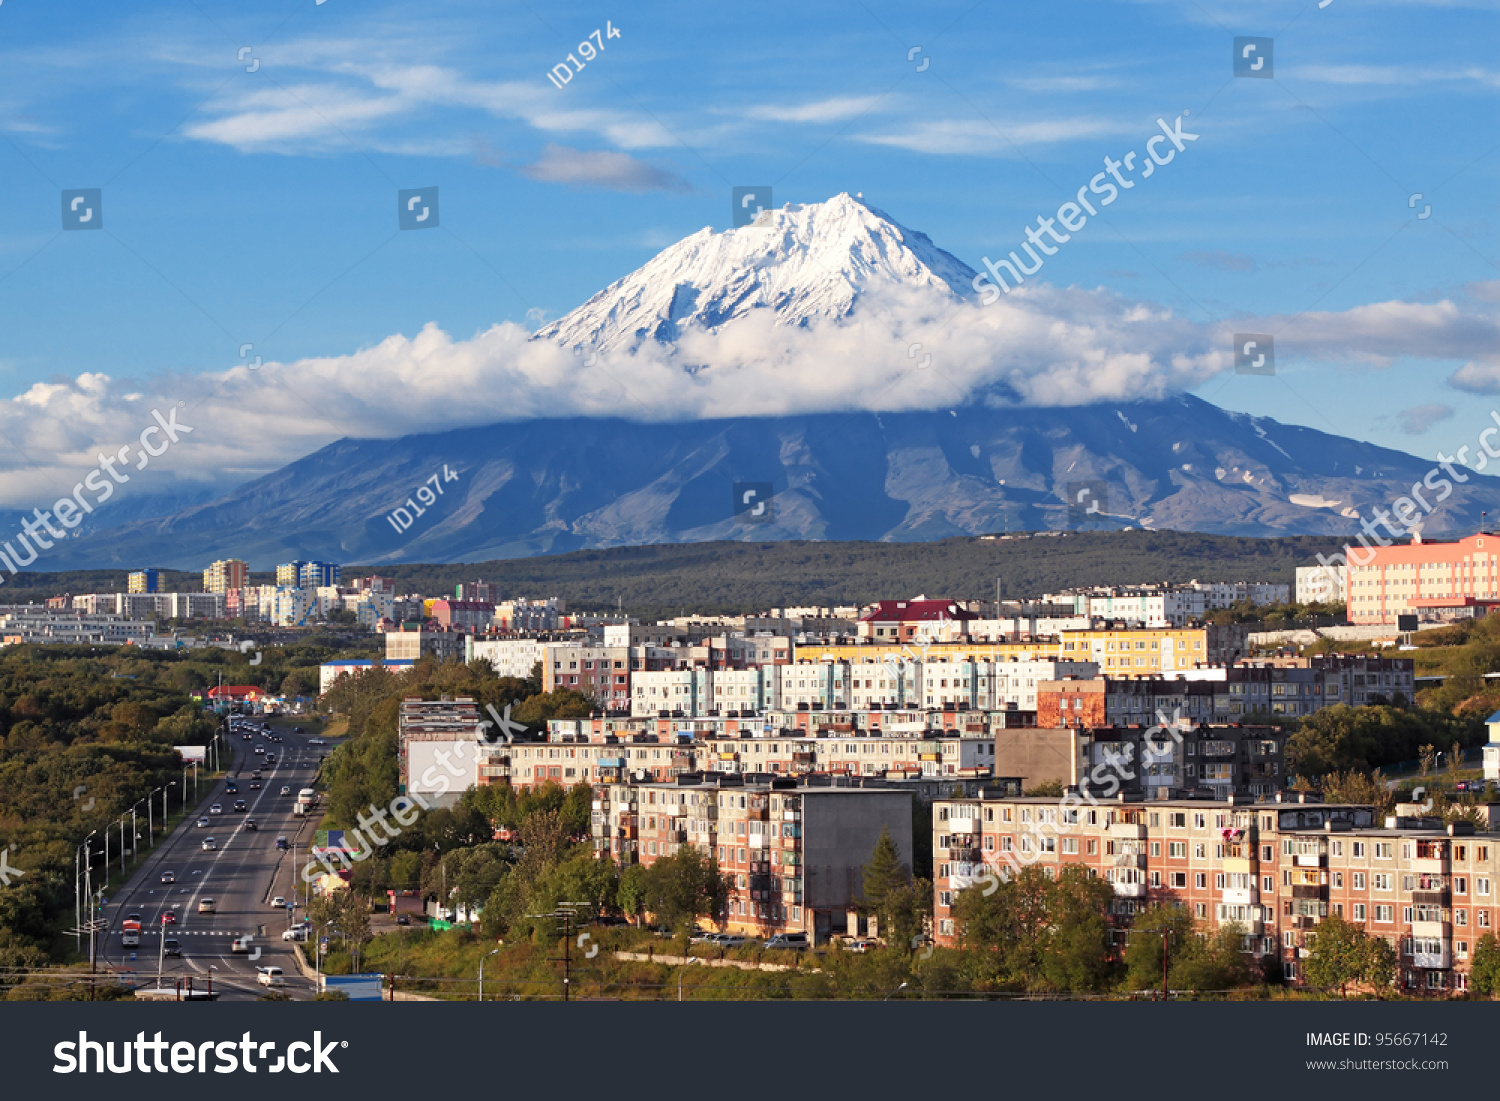 http://image.shutterstock.com/z/stock-photo-far-east-russia-the-city-landscape-of-petropavlovsk-kamchatsky-95667142.jpg